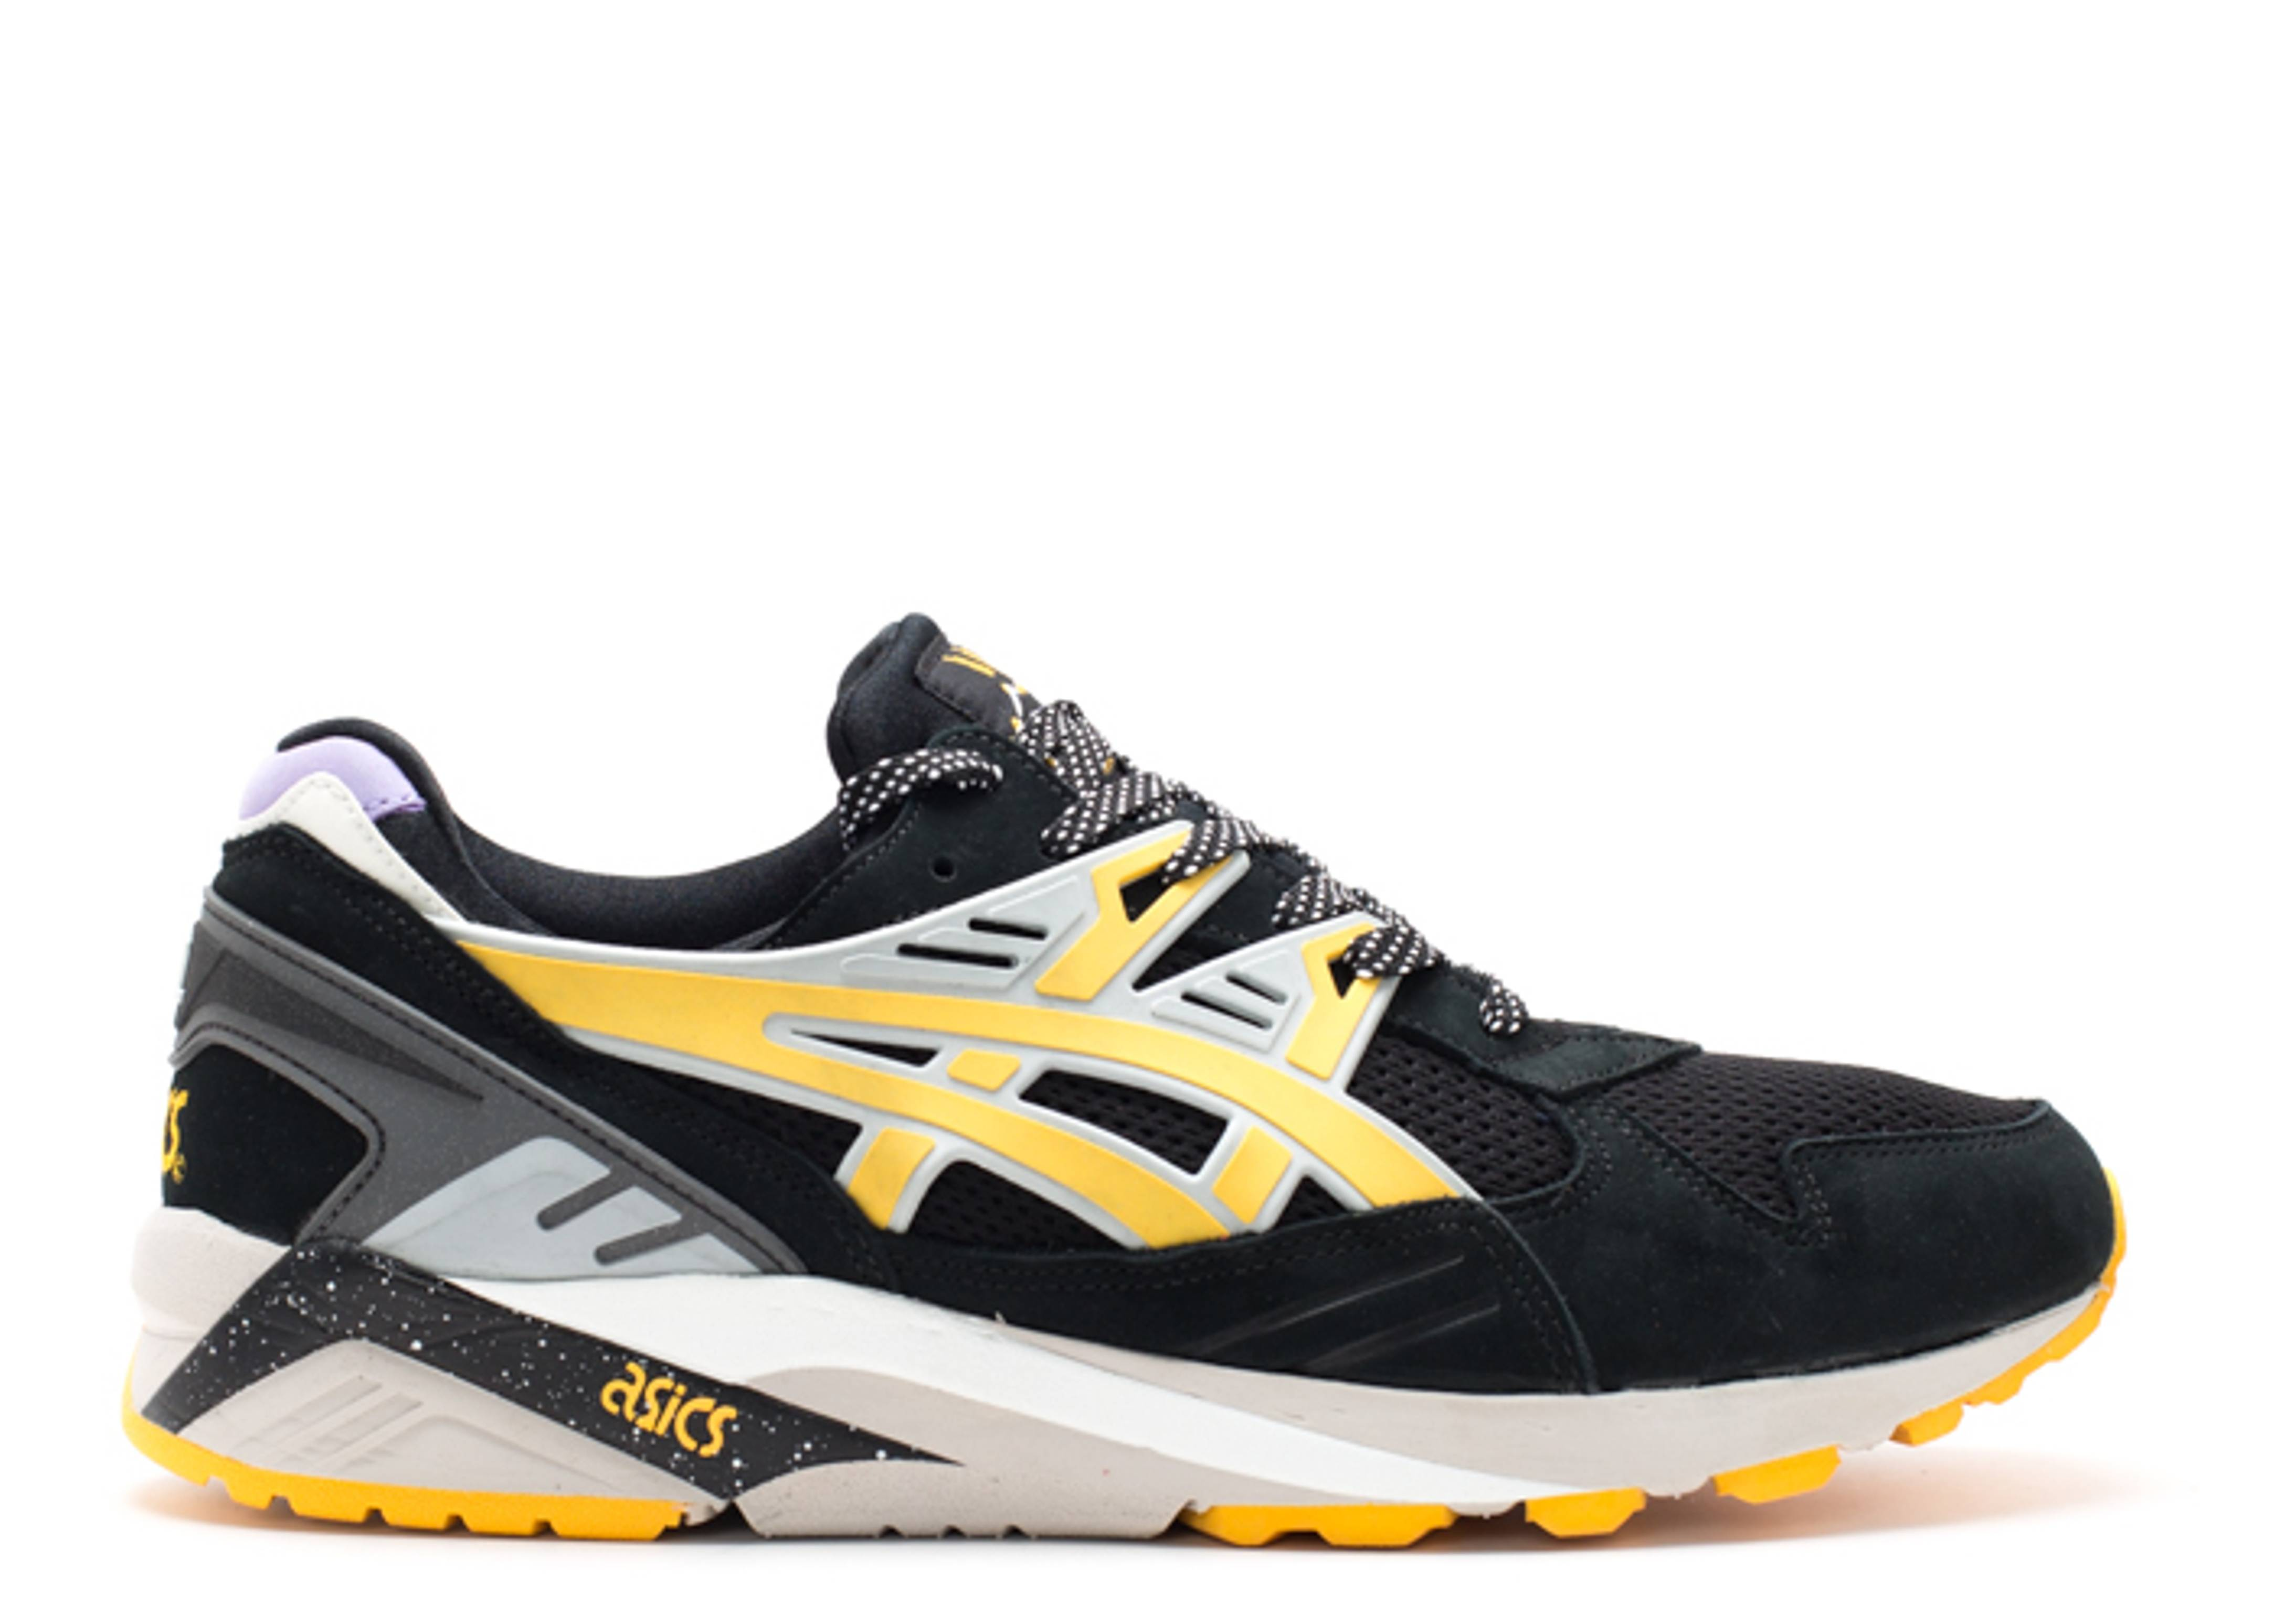 quality design adf13 e16a7 Gel Kayano Trainer - Asics - h43hk9005 - black/yellow ...